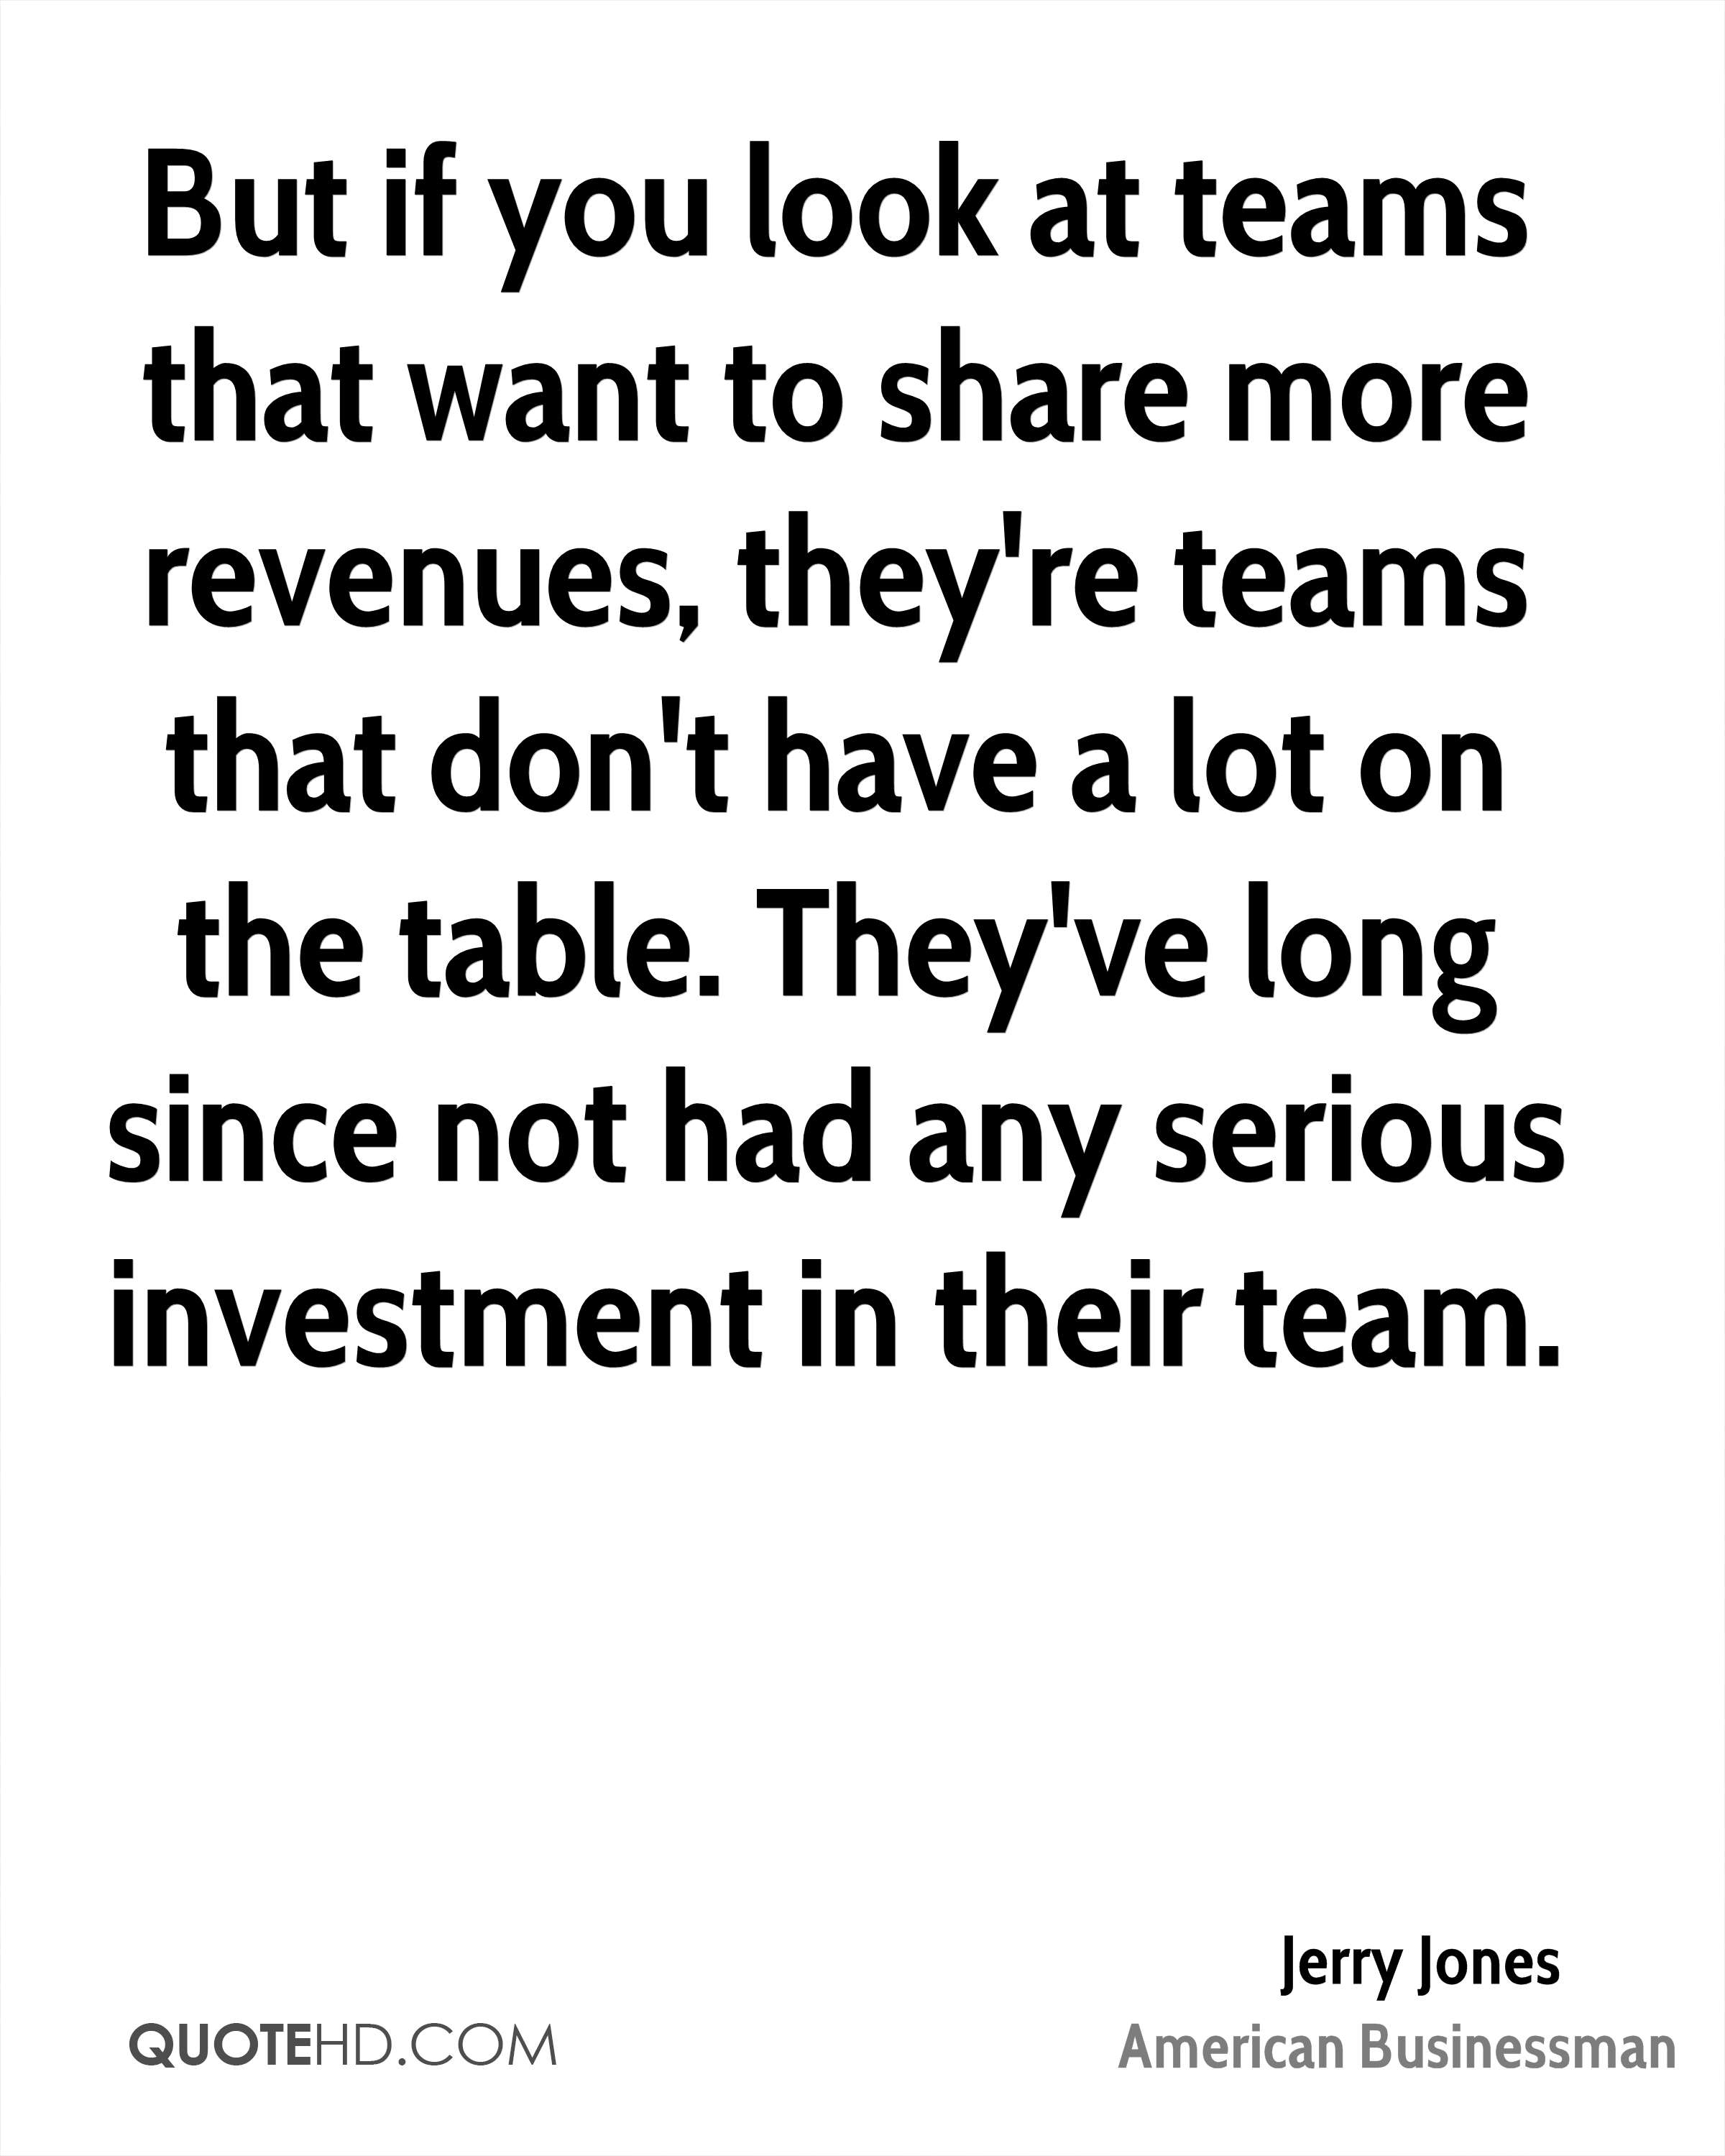 But if you look at teams that want to share more revenues, they're teams that don't have a lot on the table. They've long since not had any serious investment in their team.